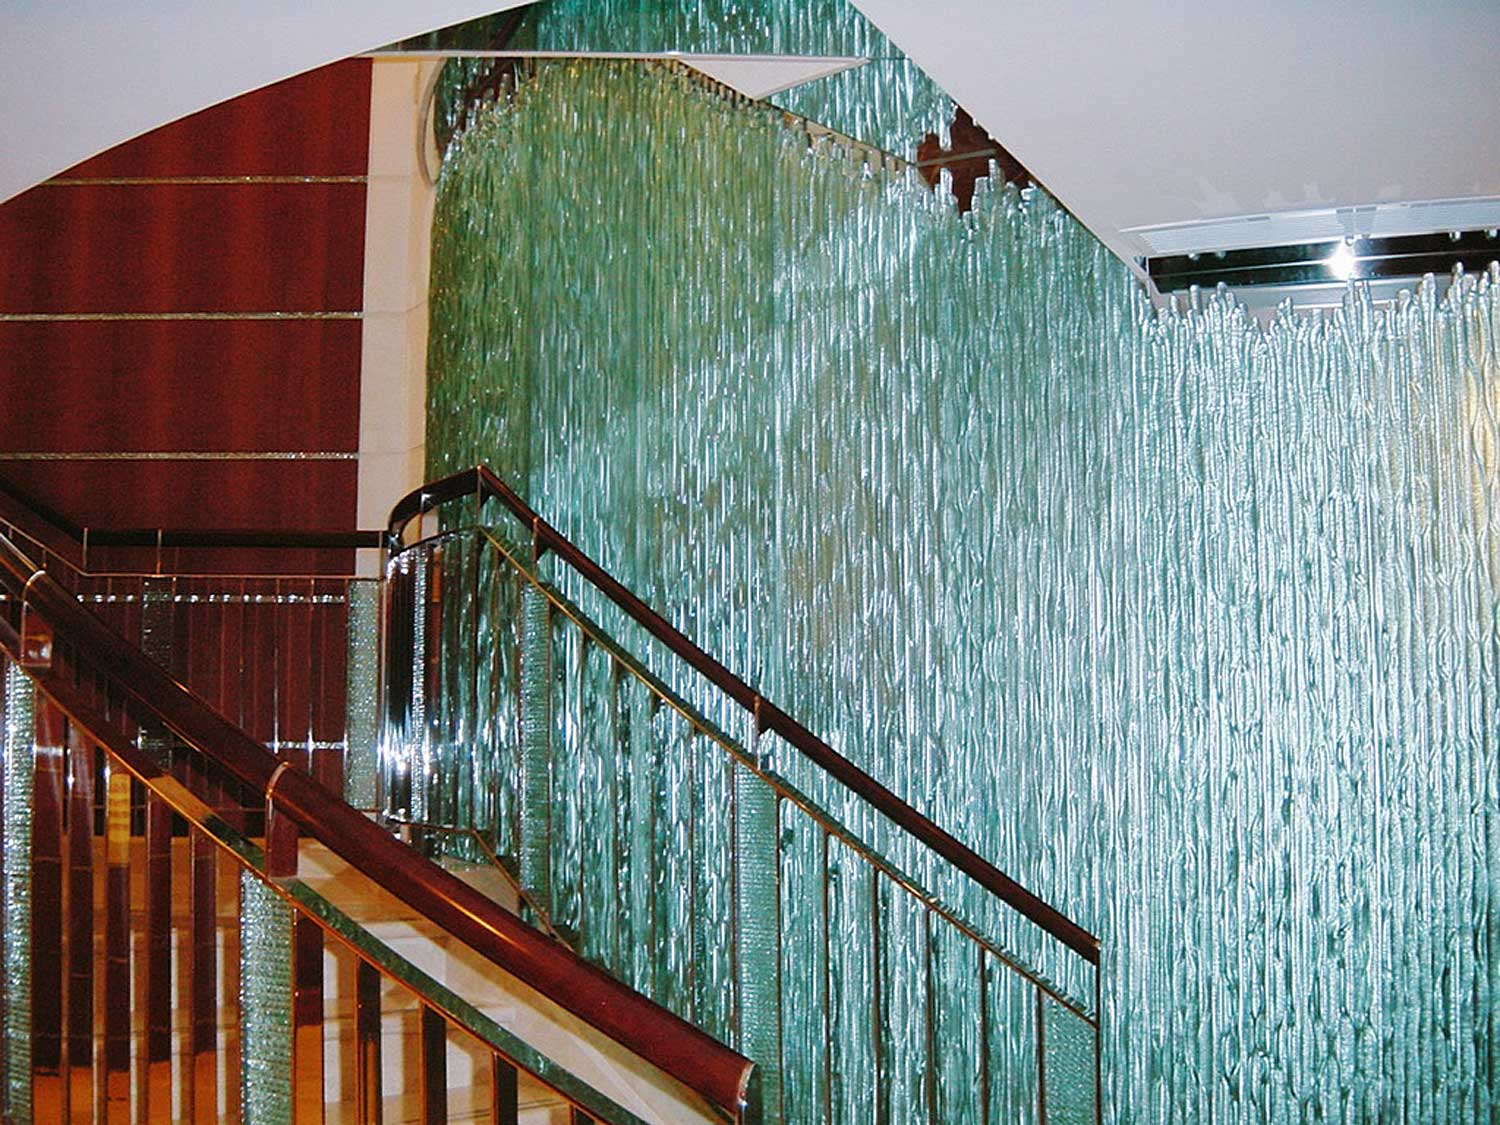 GlassStax handrail staircase